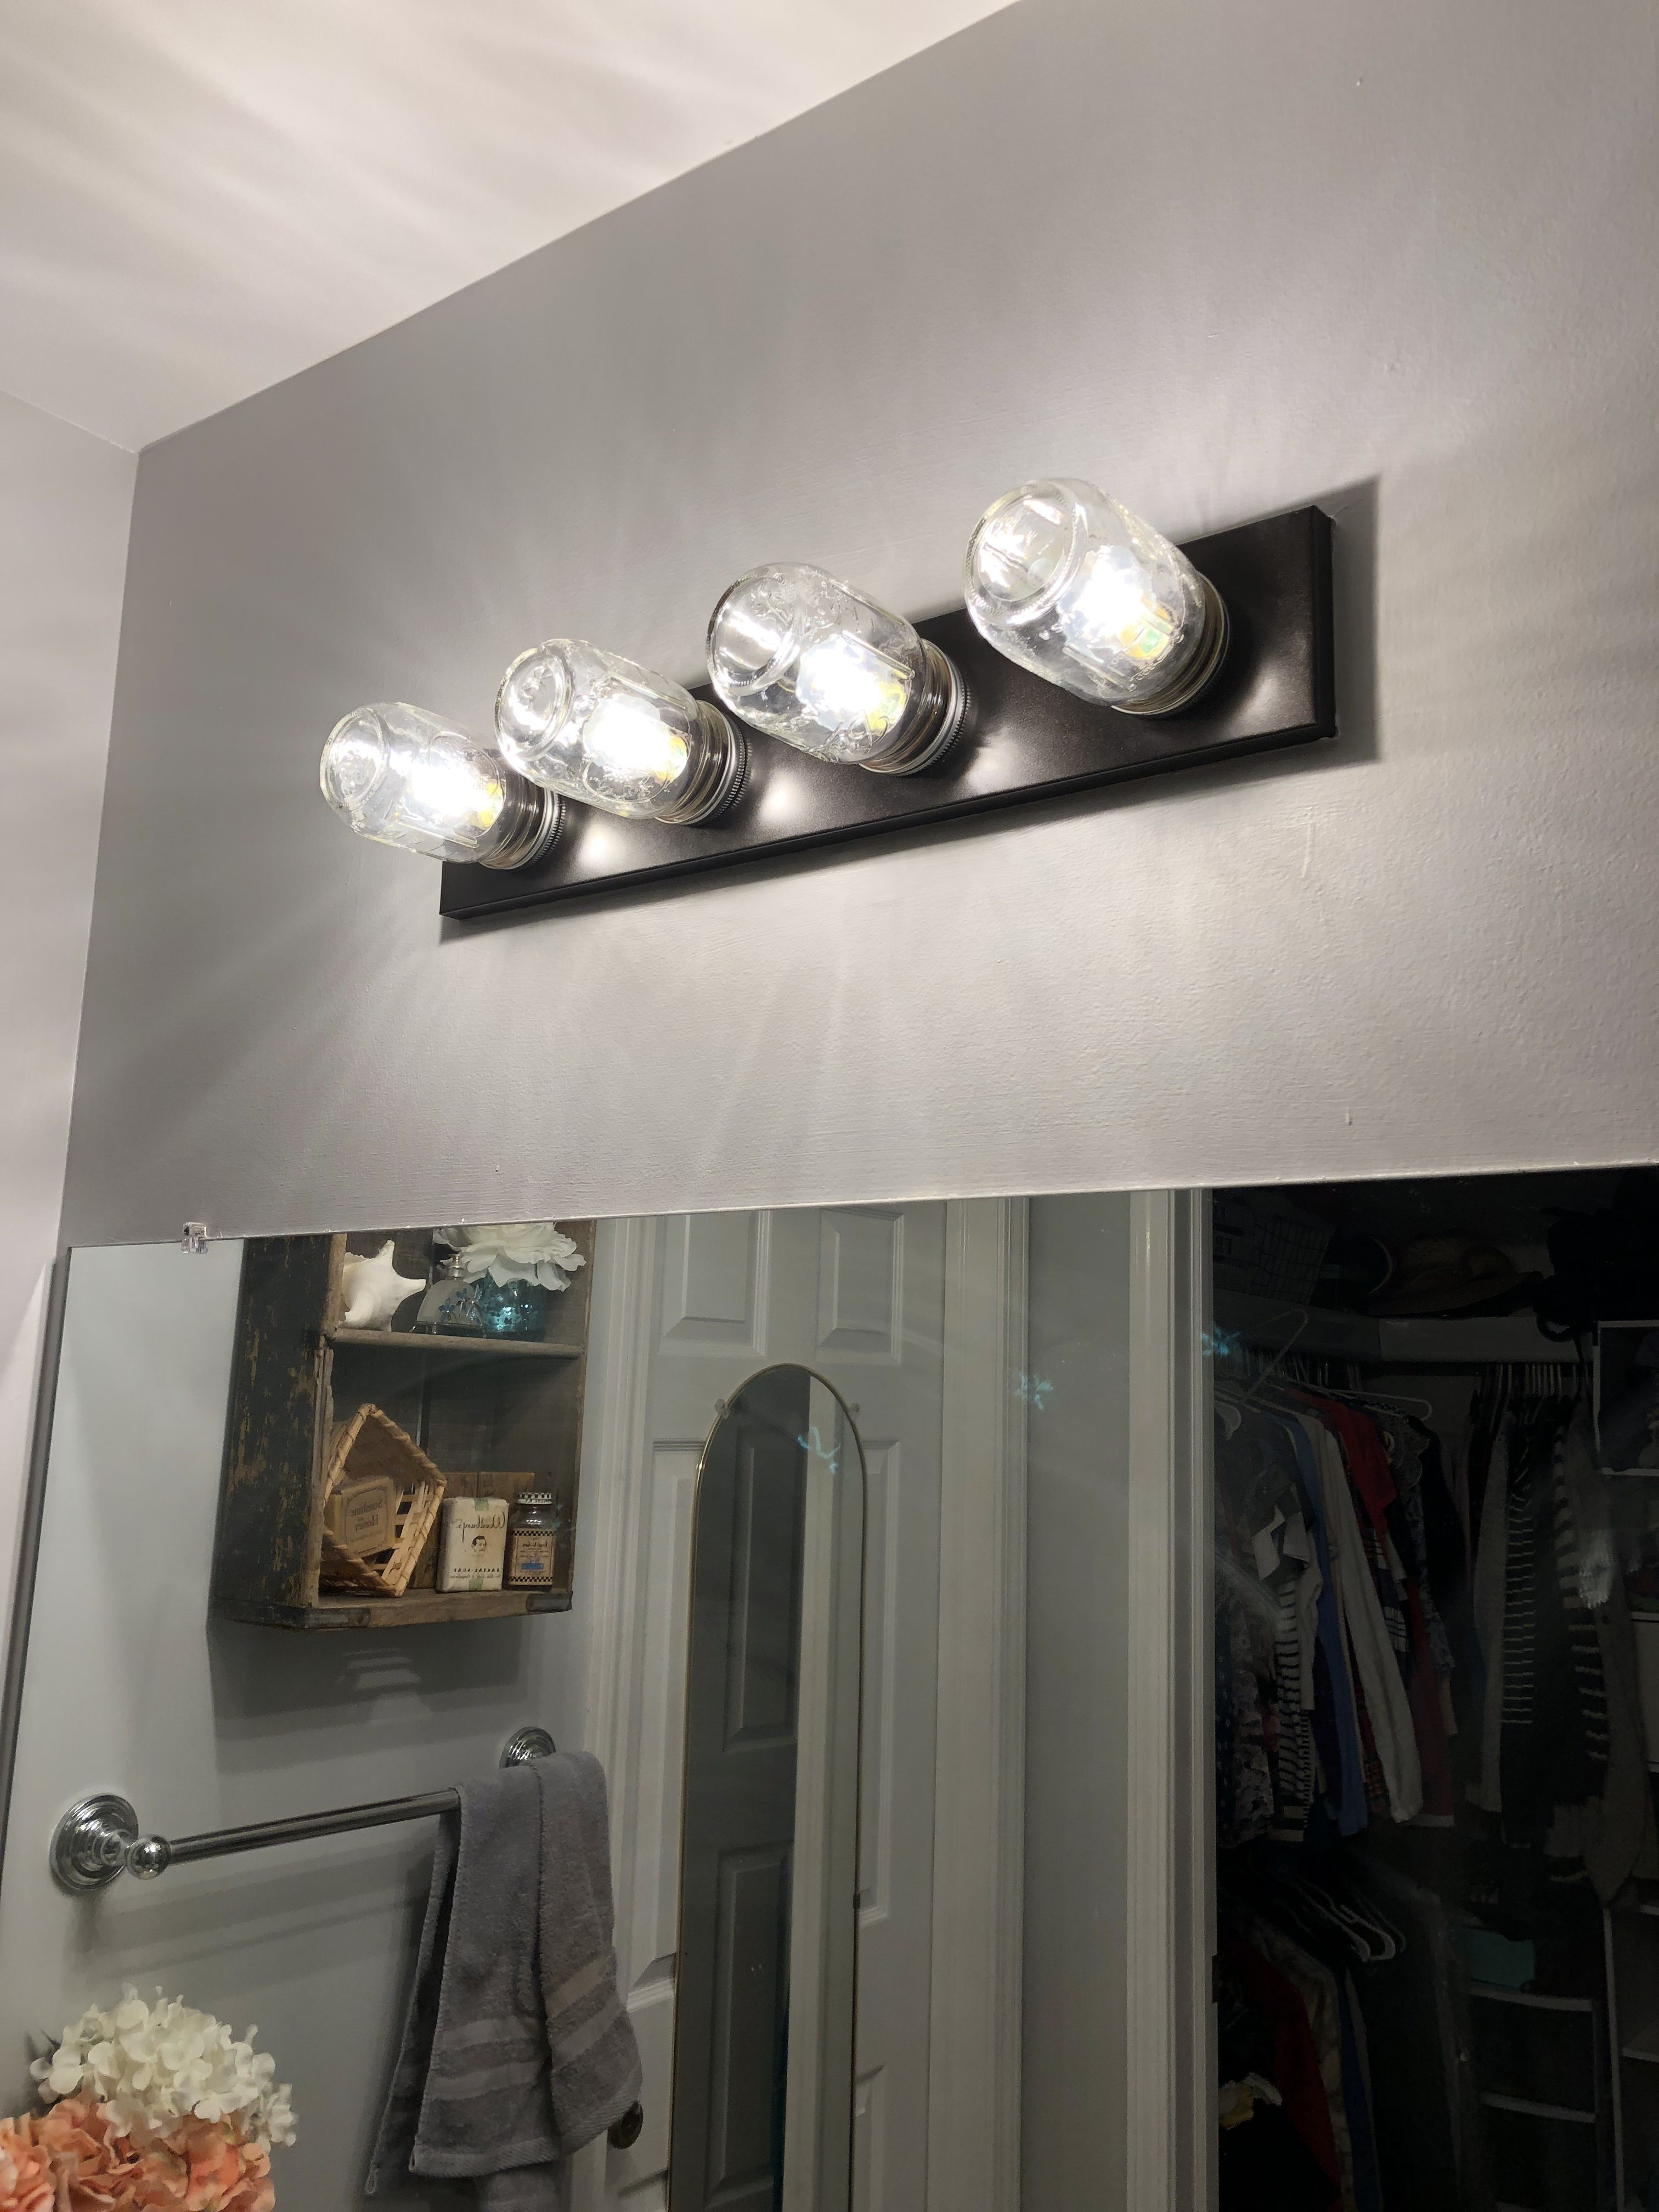 Ugly hollywood builder light fixtures in your bathroom update by screwing in mason jars